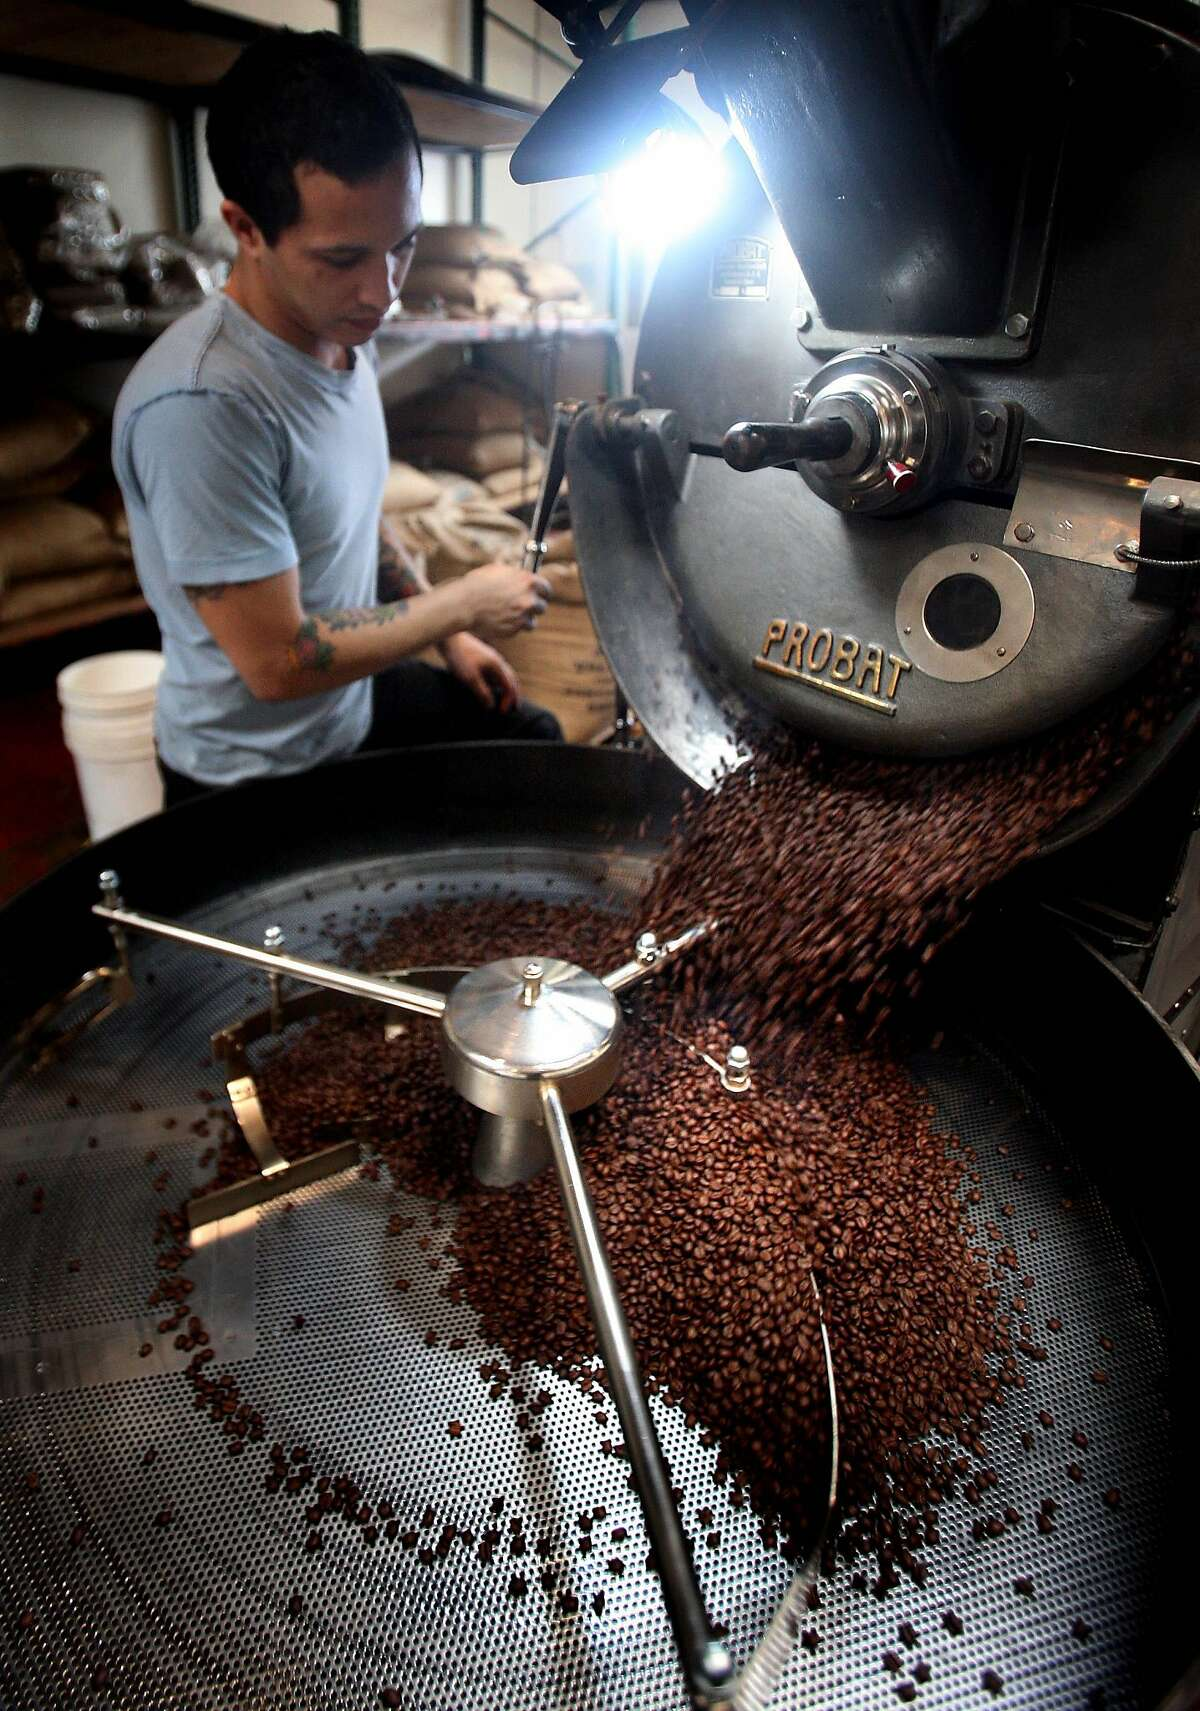 Jeremy Tooker inspects a batch of coffee he's roasting at Four Barrel Coffee in 2009.